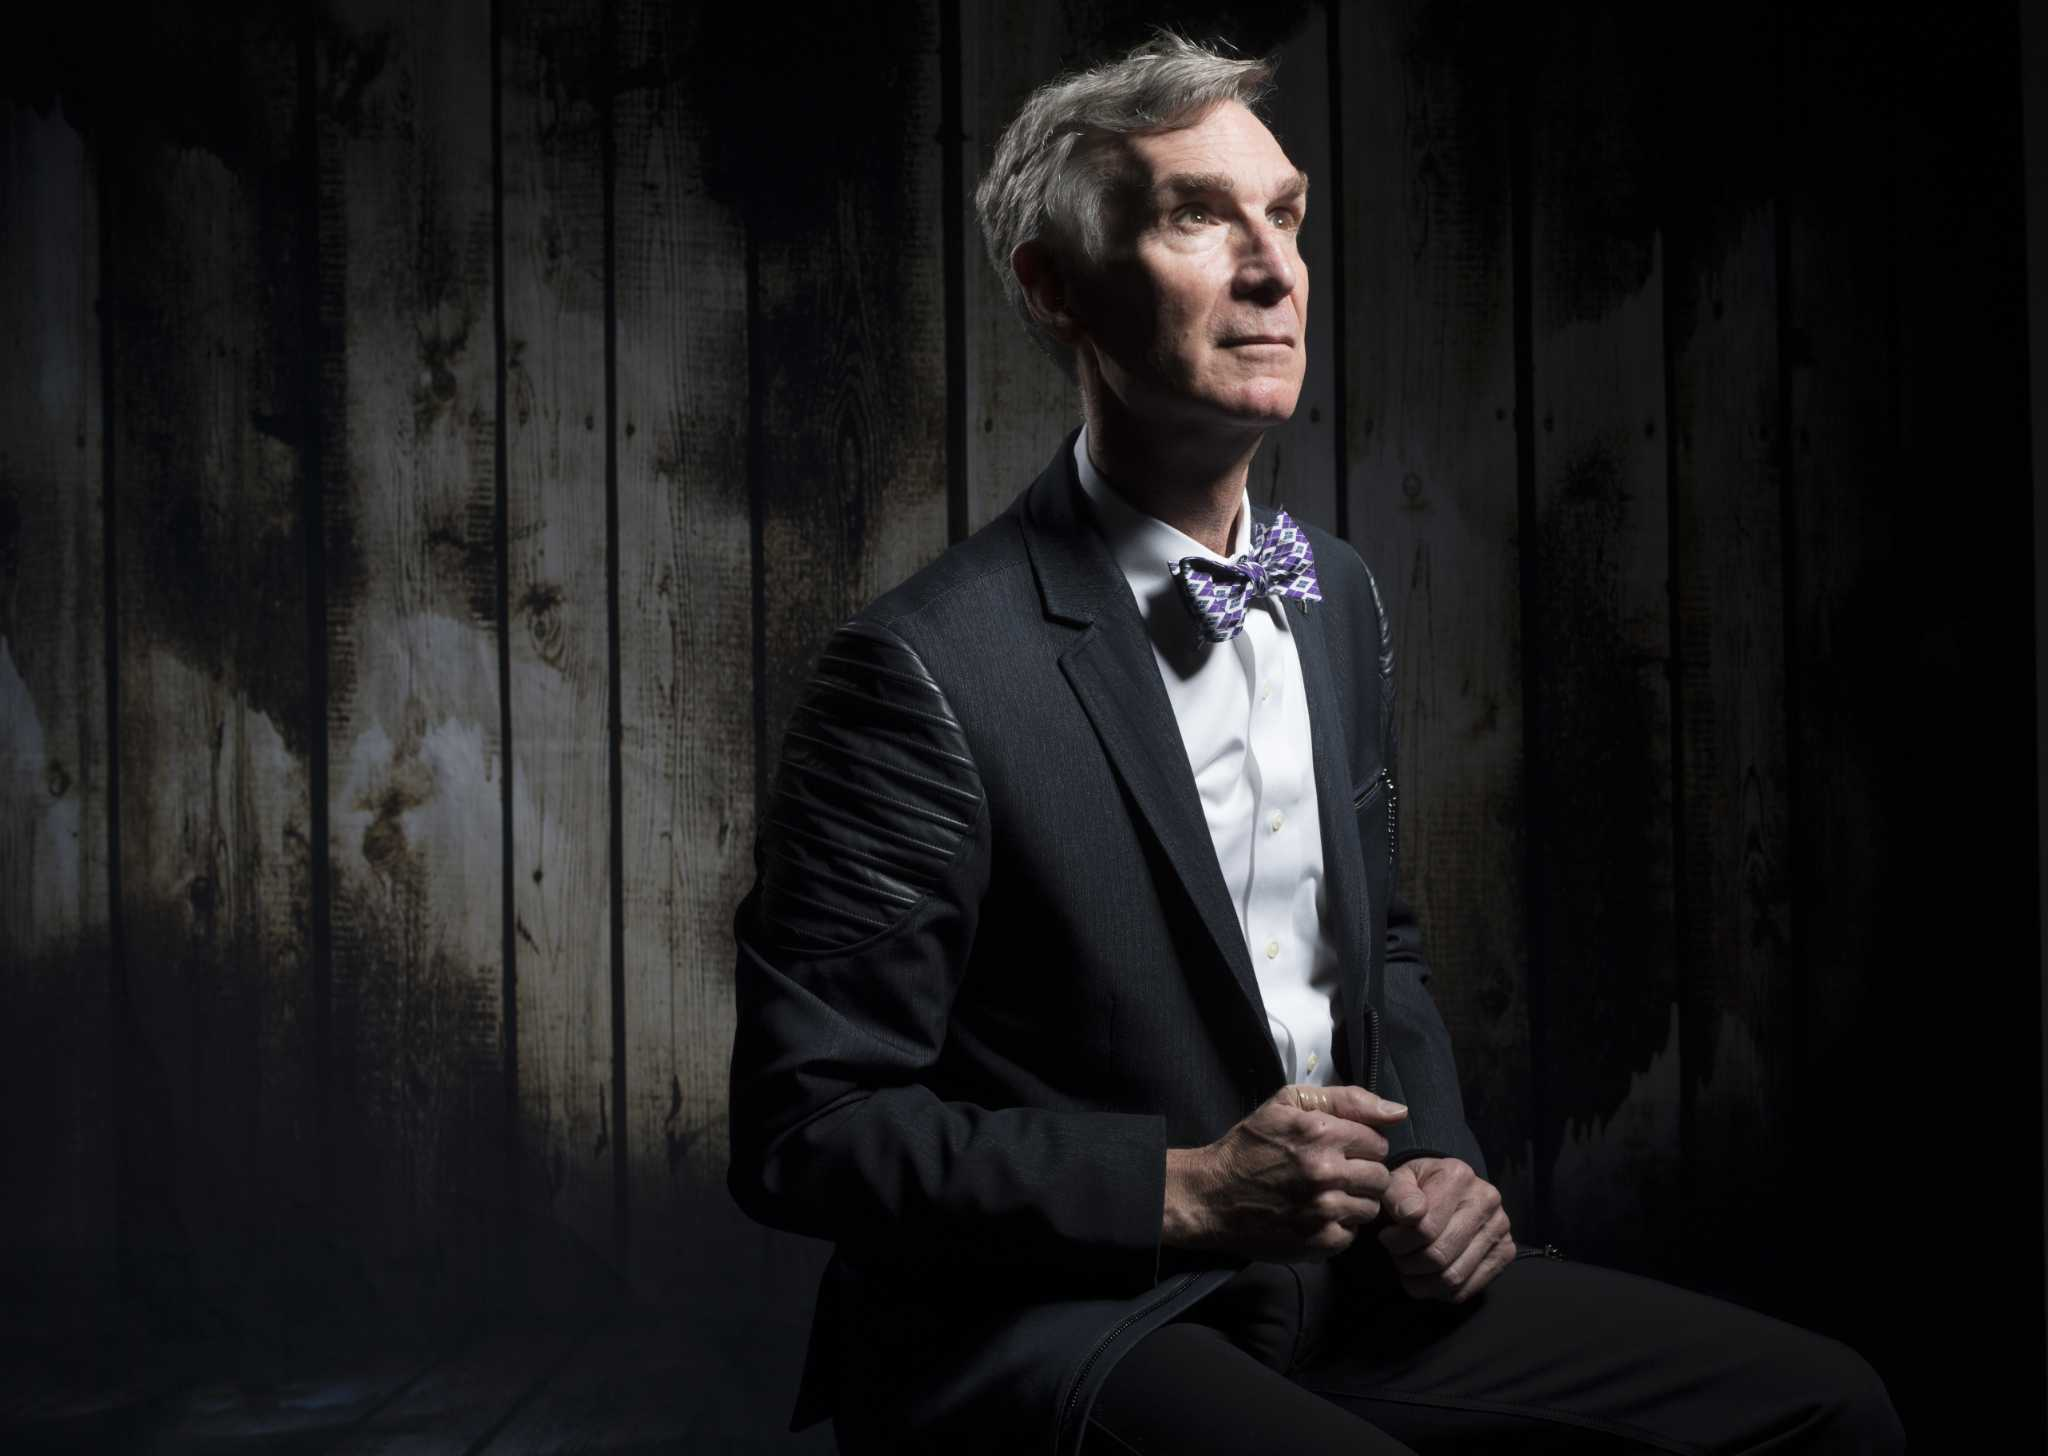 Bill Nye to speak at Houston commercial space conference